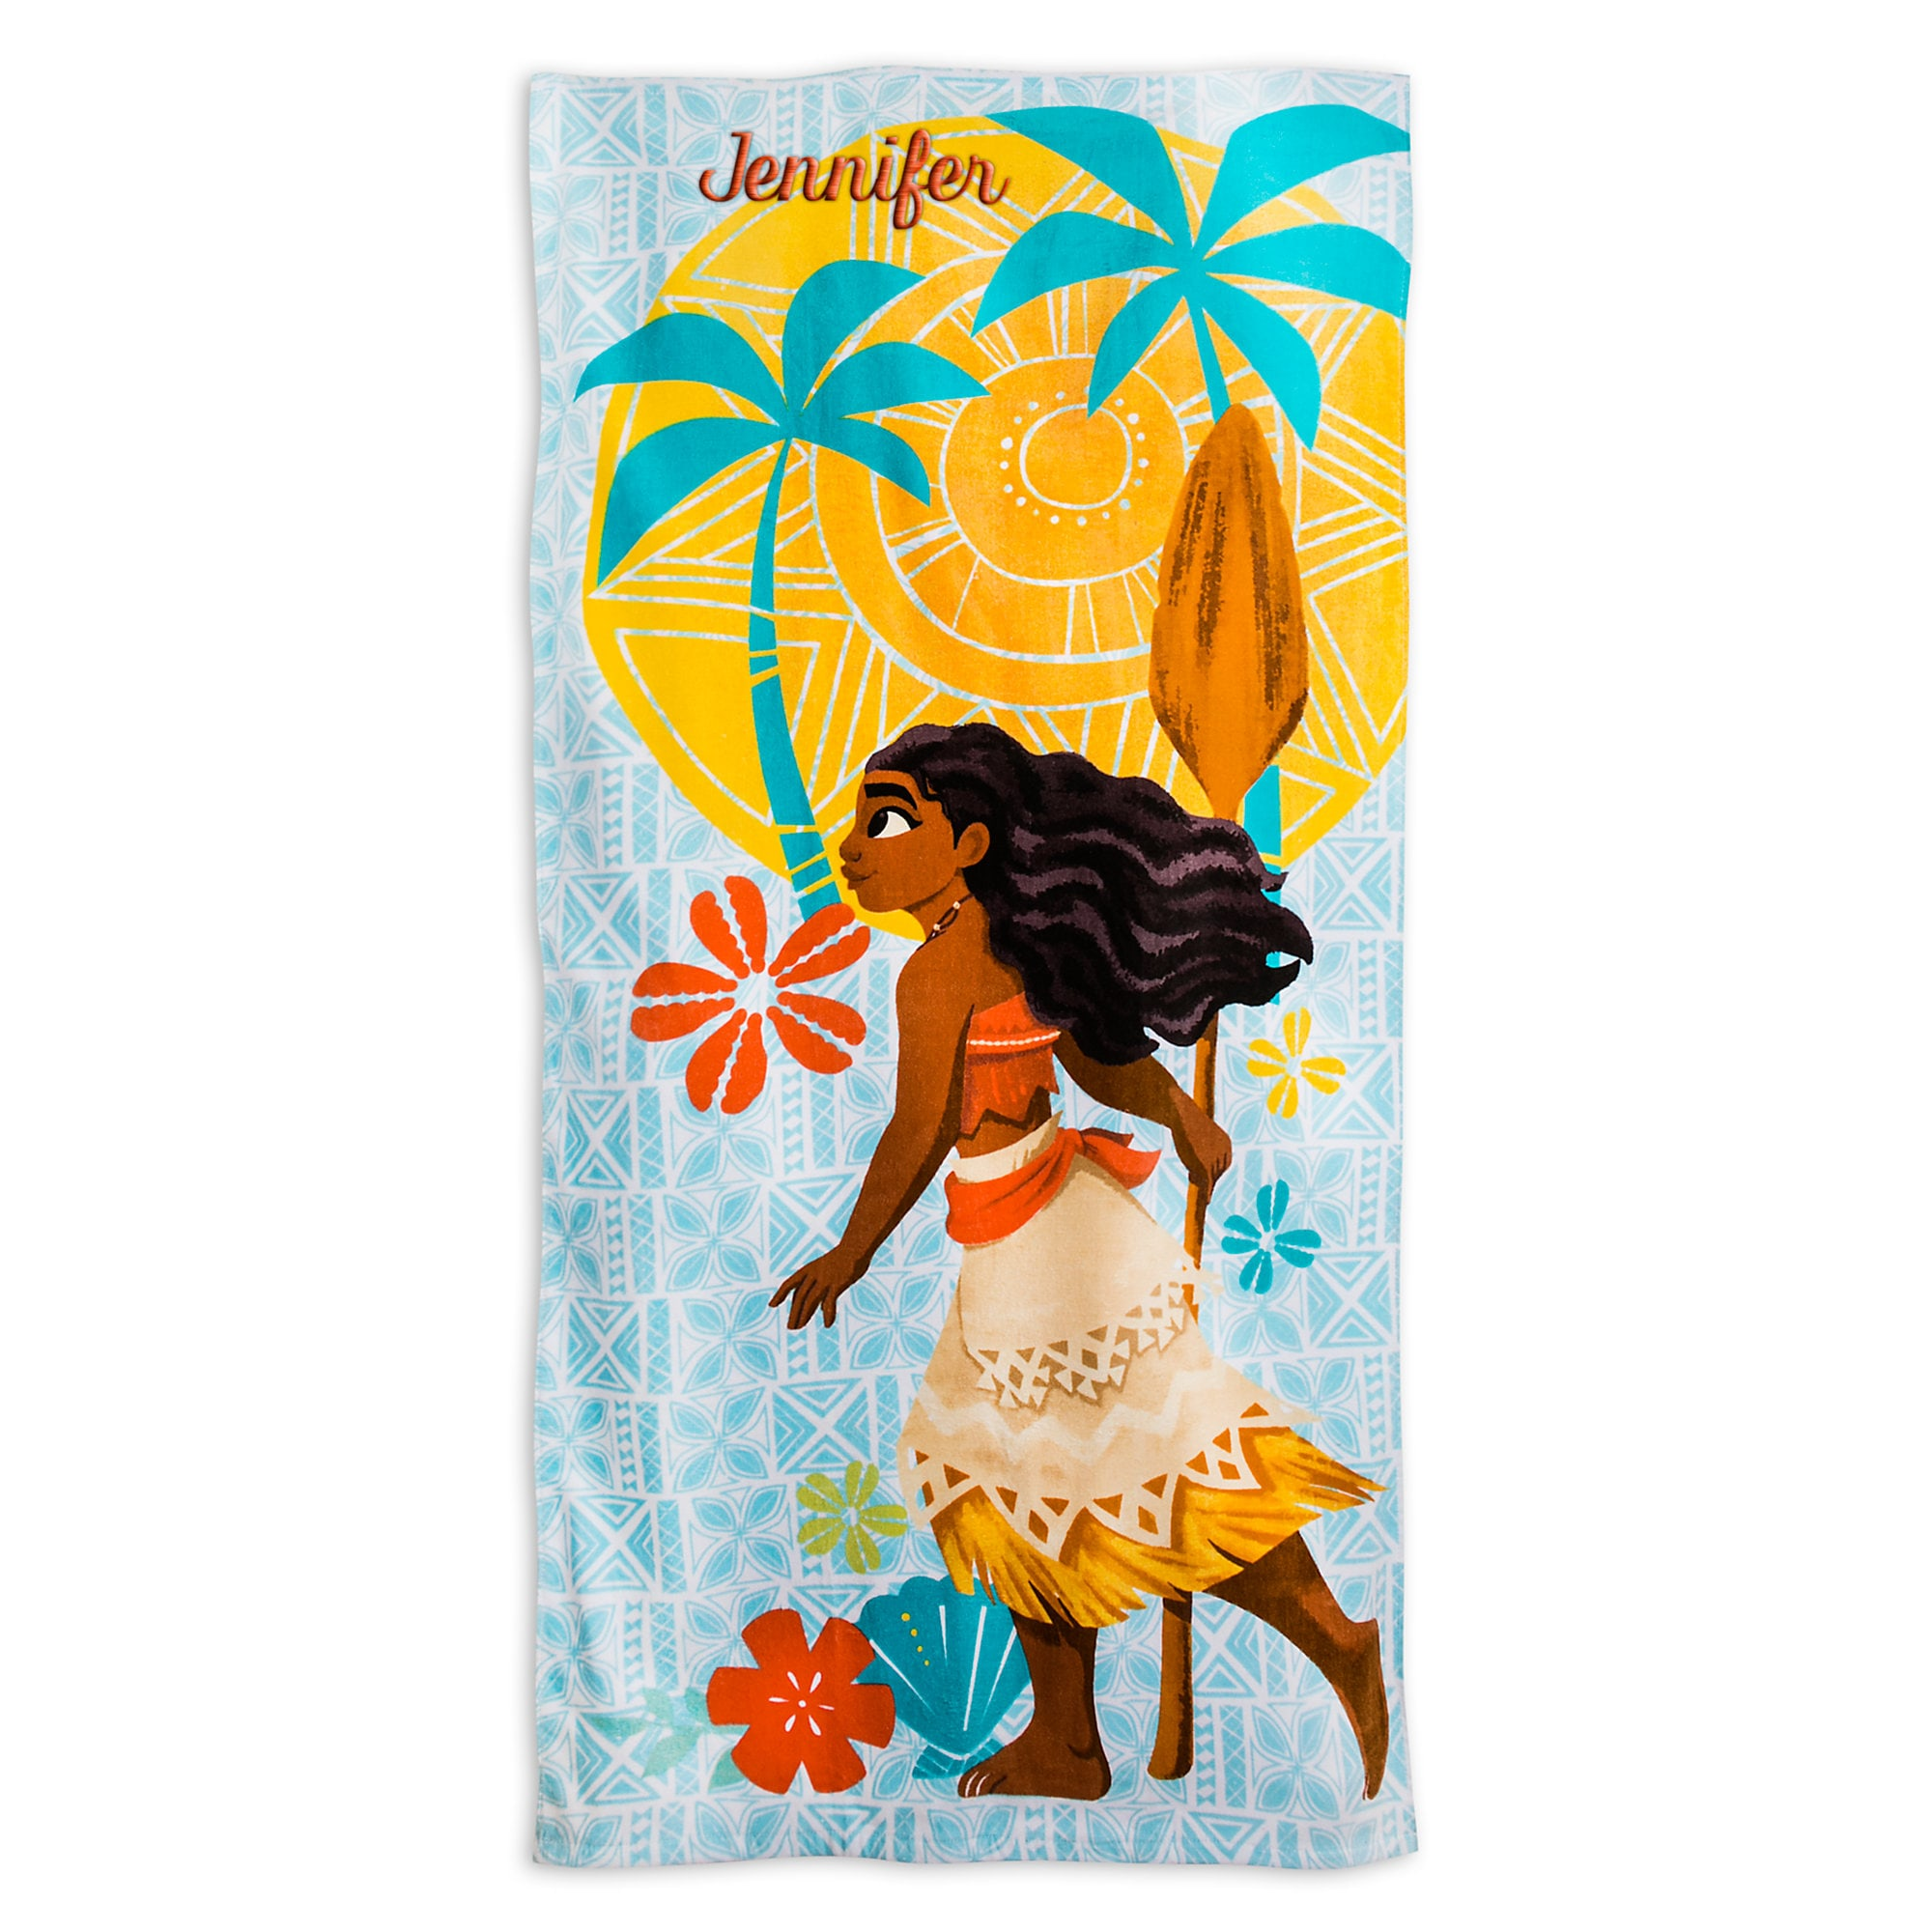 Moana Beach Towel for Kids - Personalizable